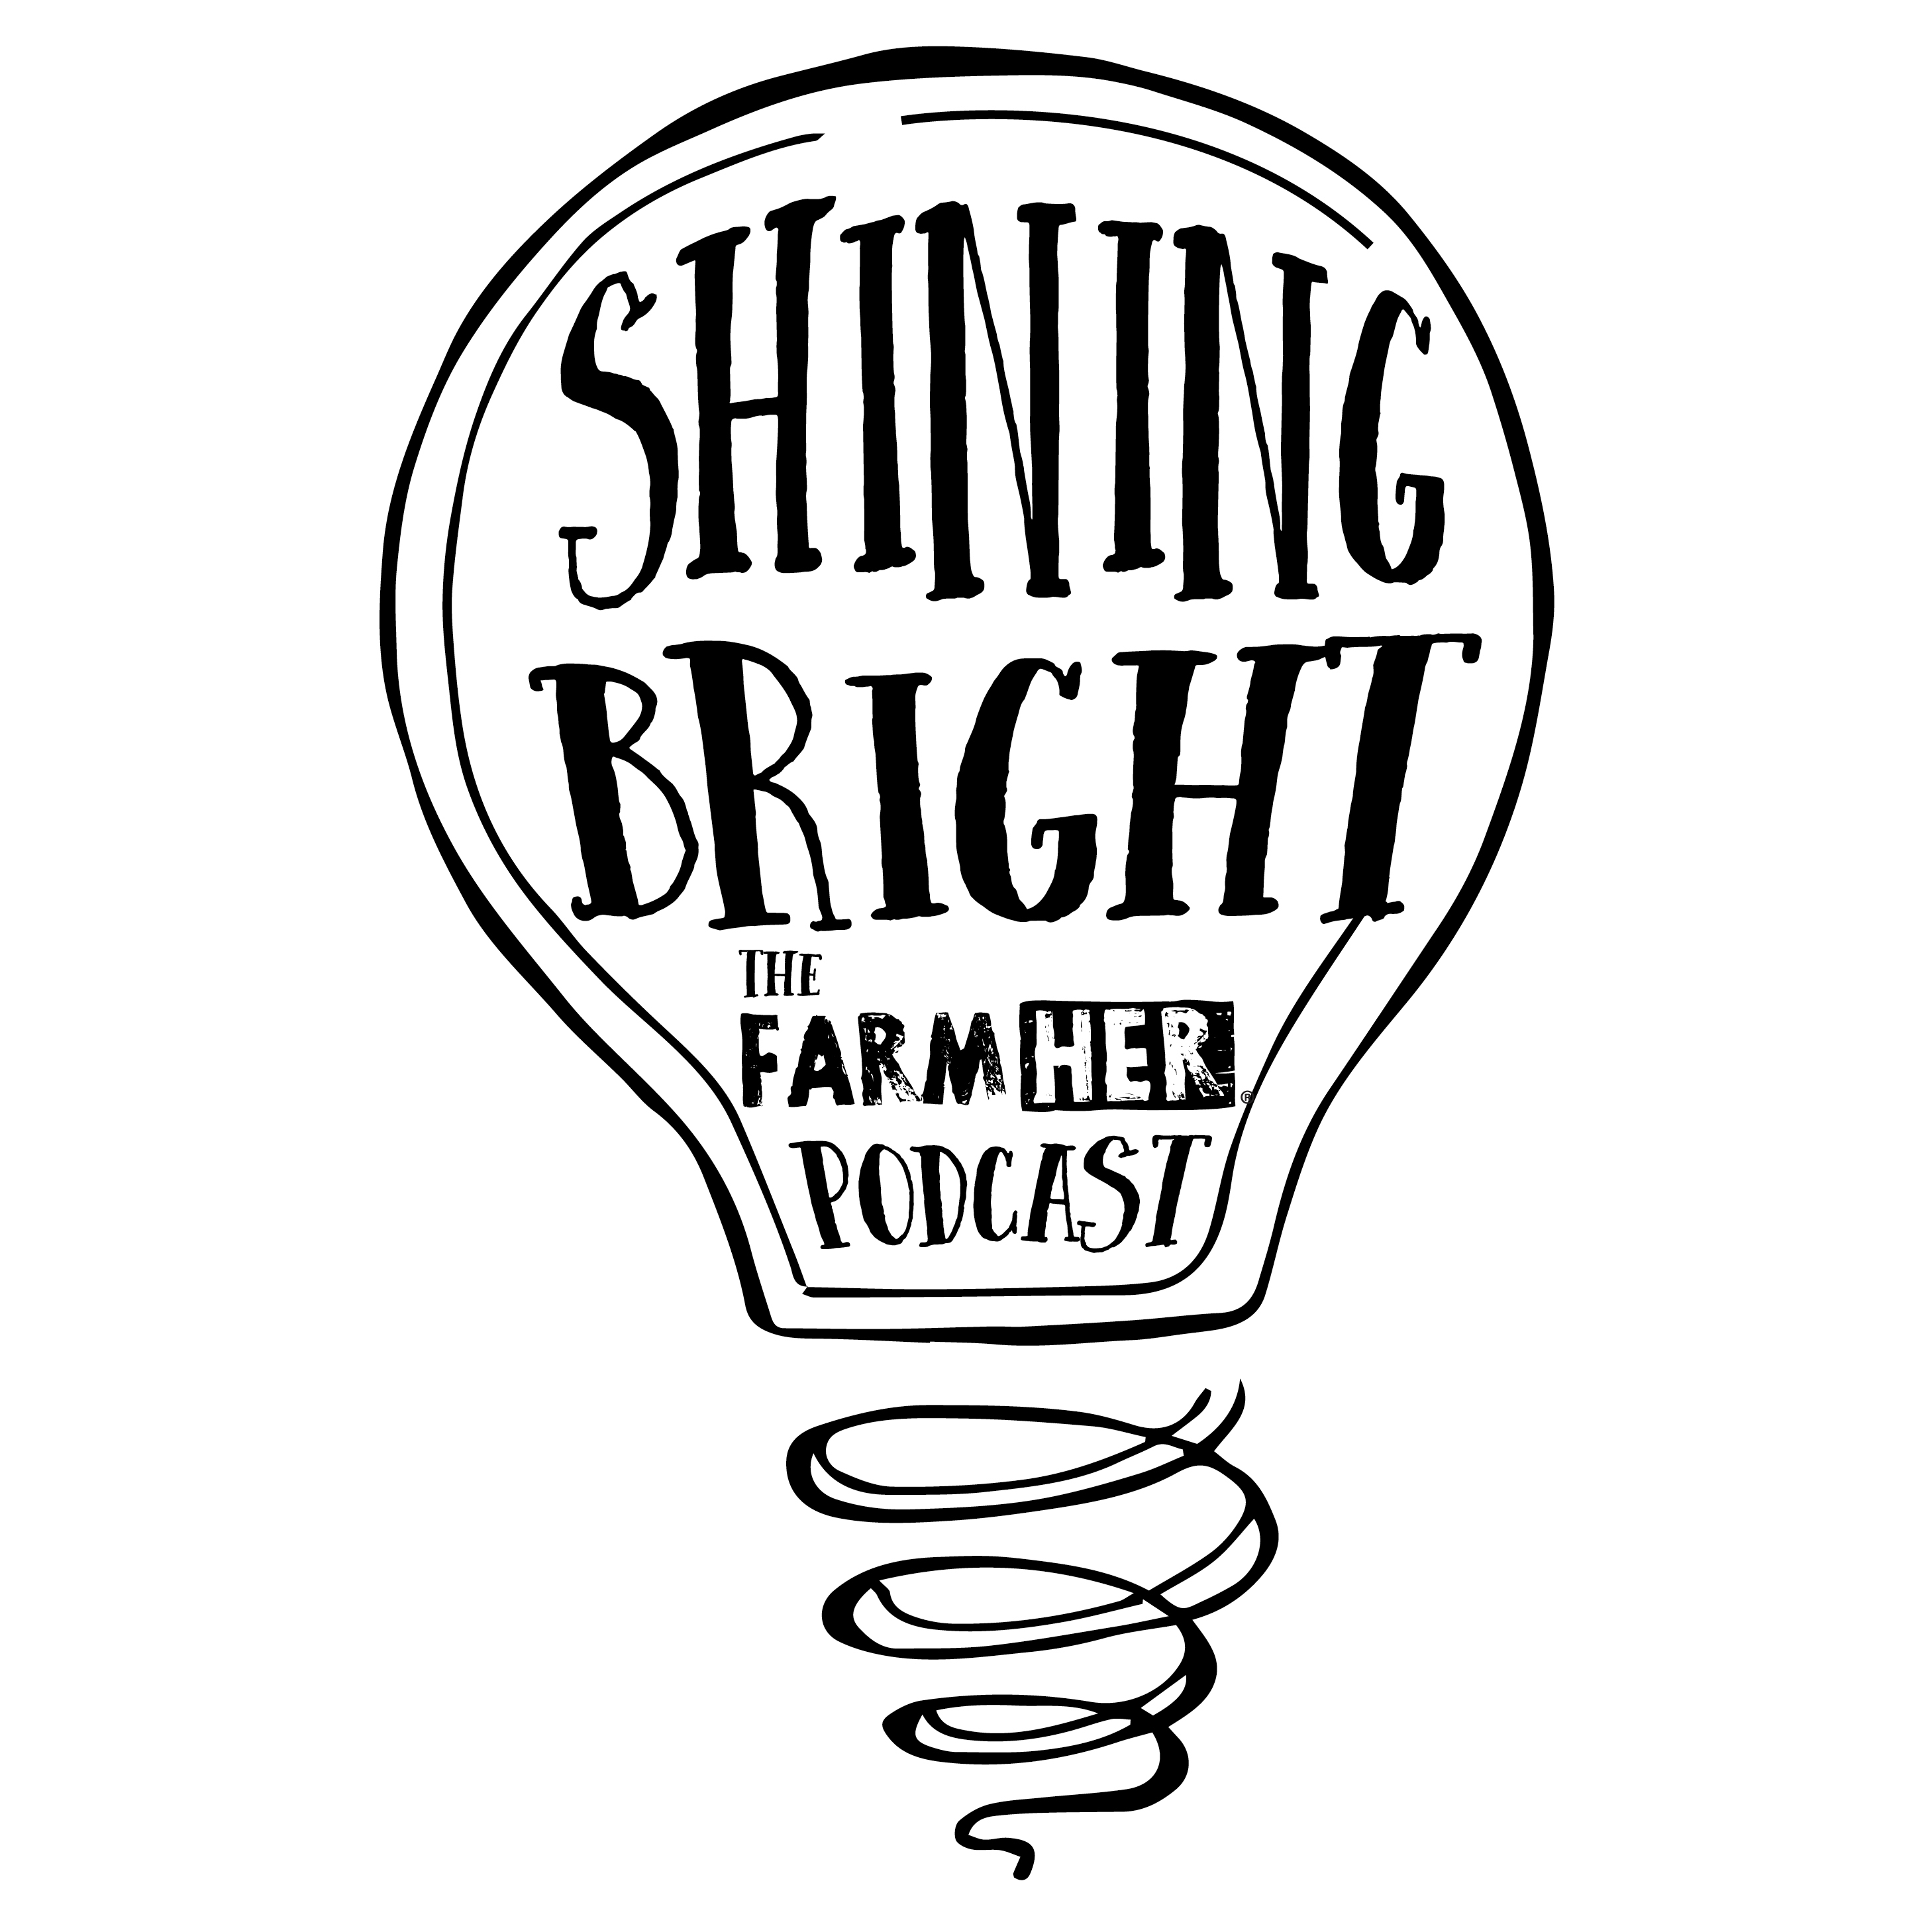 shining bright the farmher podcast libsyn directory  info outline rebeckah adcock usda s01 e55 12 12 2018